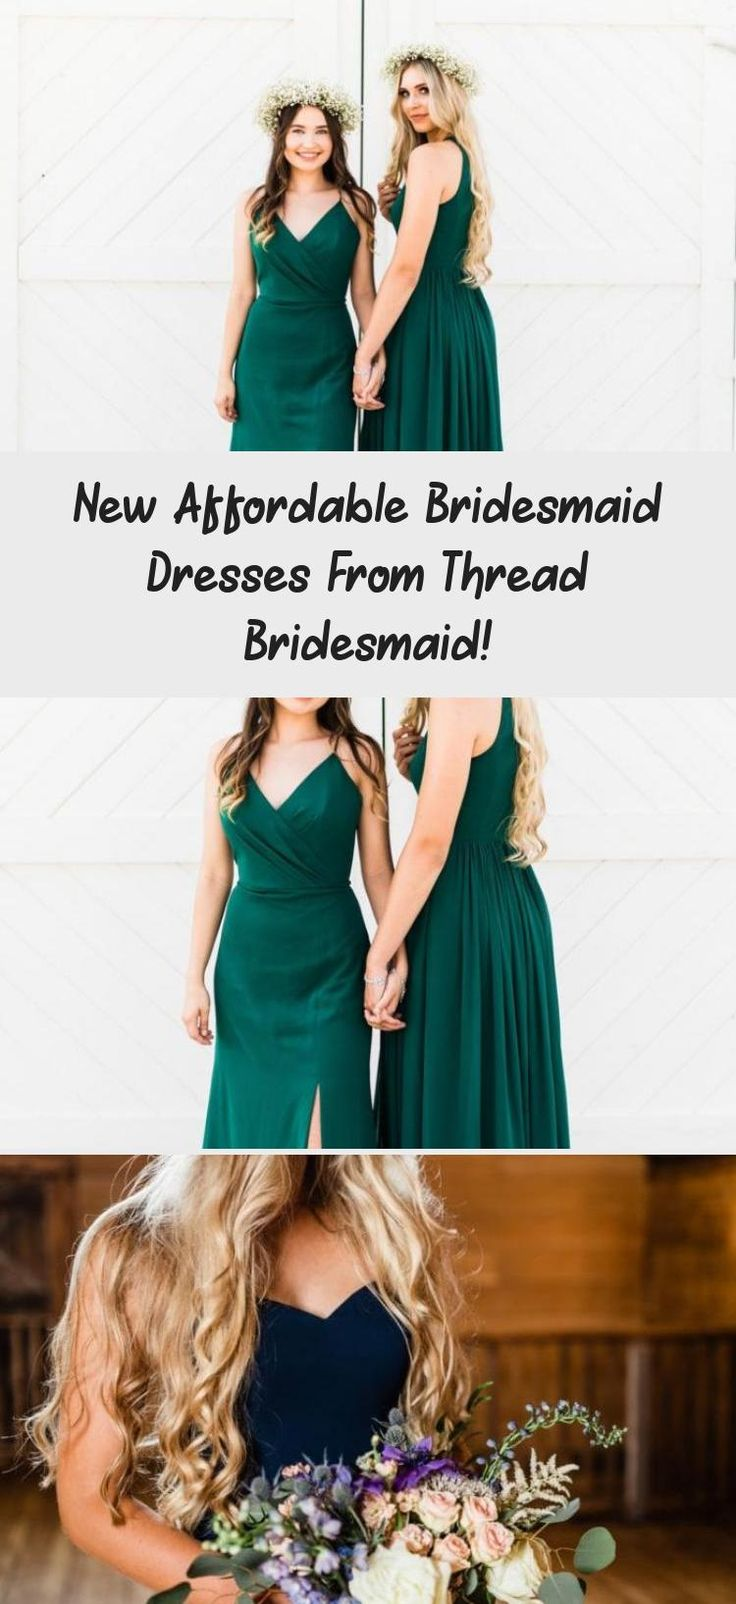 Light blue boho style affordable dresses for bridesmaids from Thread Bridesmaid! #bridesmaids #bridesmaid #bridesmaiddresses #LavenderBridesmaidDresses #OffTheShoulderBridesmaidDresses #SilverBridesmaidDresses #BridesmaidDressesStyles #BridesmaidDressesTurquoise